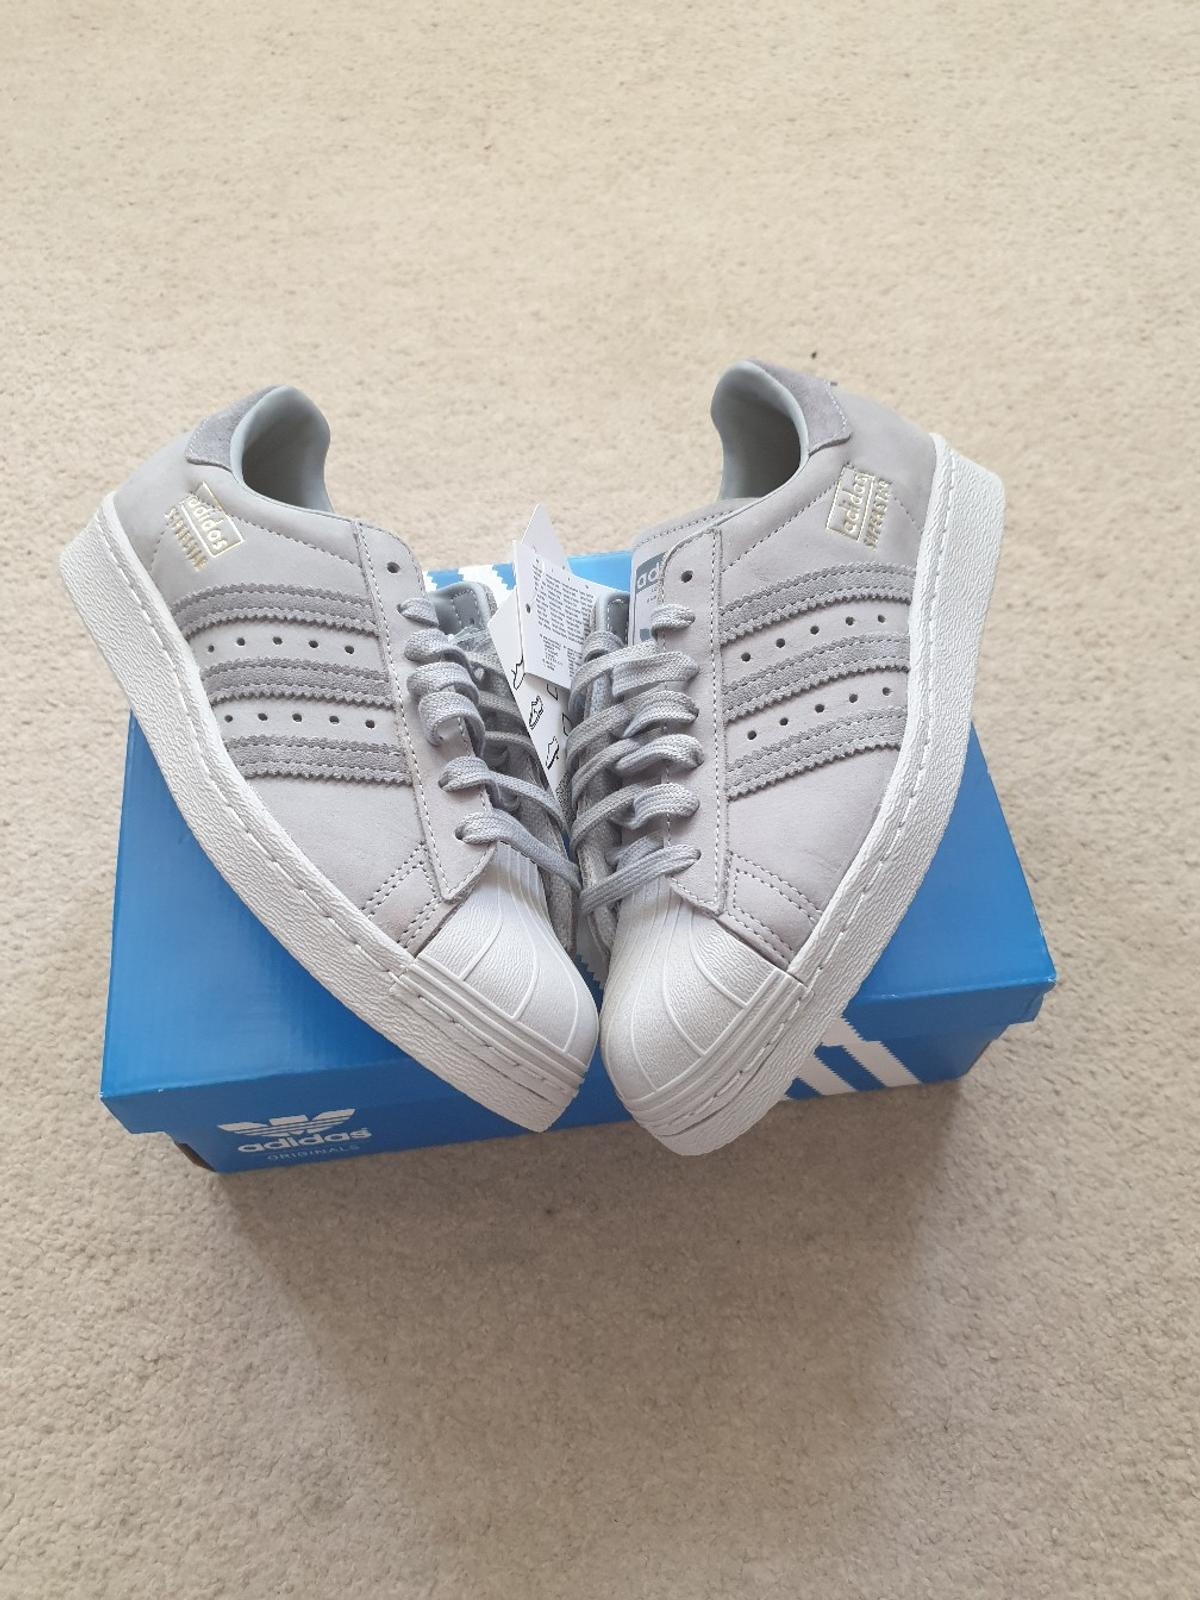 detailed look cf3c1 8758c Adidas superstar grey suede trainers sz 5 NEW in Burtonwood ...